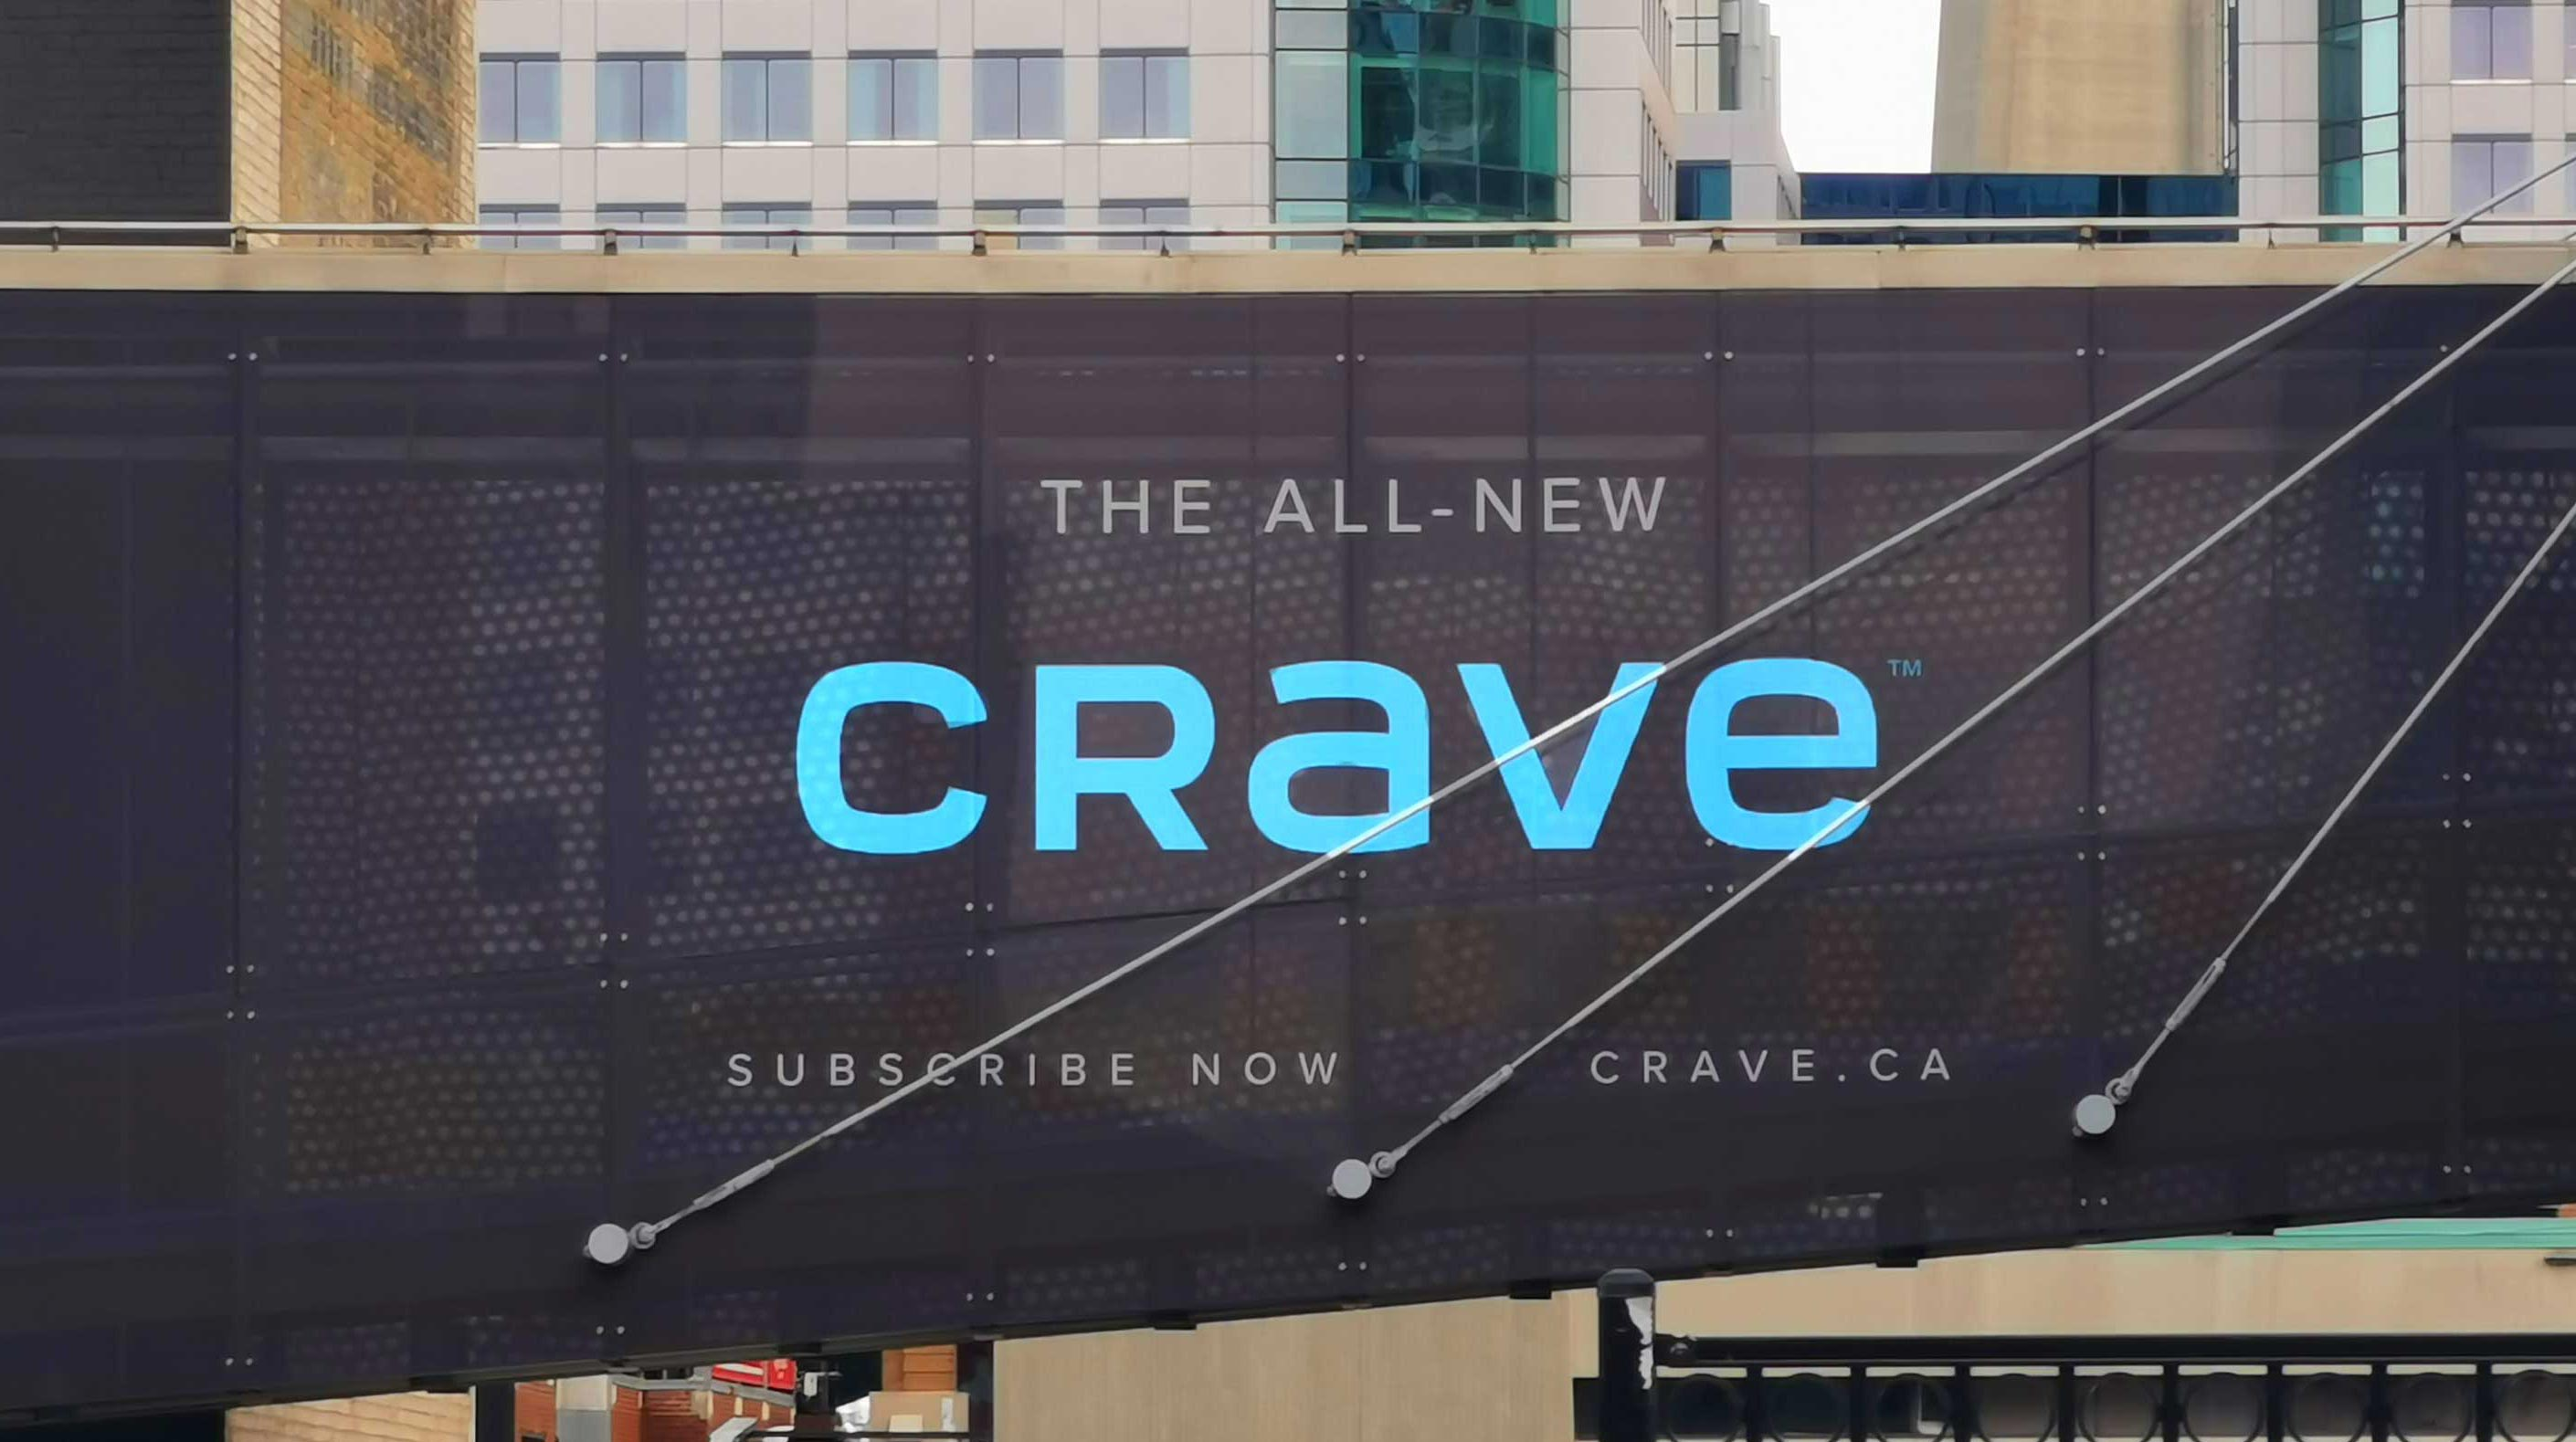 Here's what's coming to Crave in November 2020